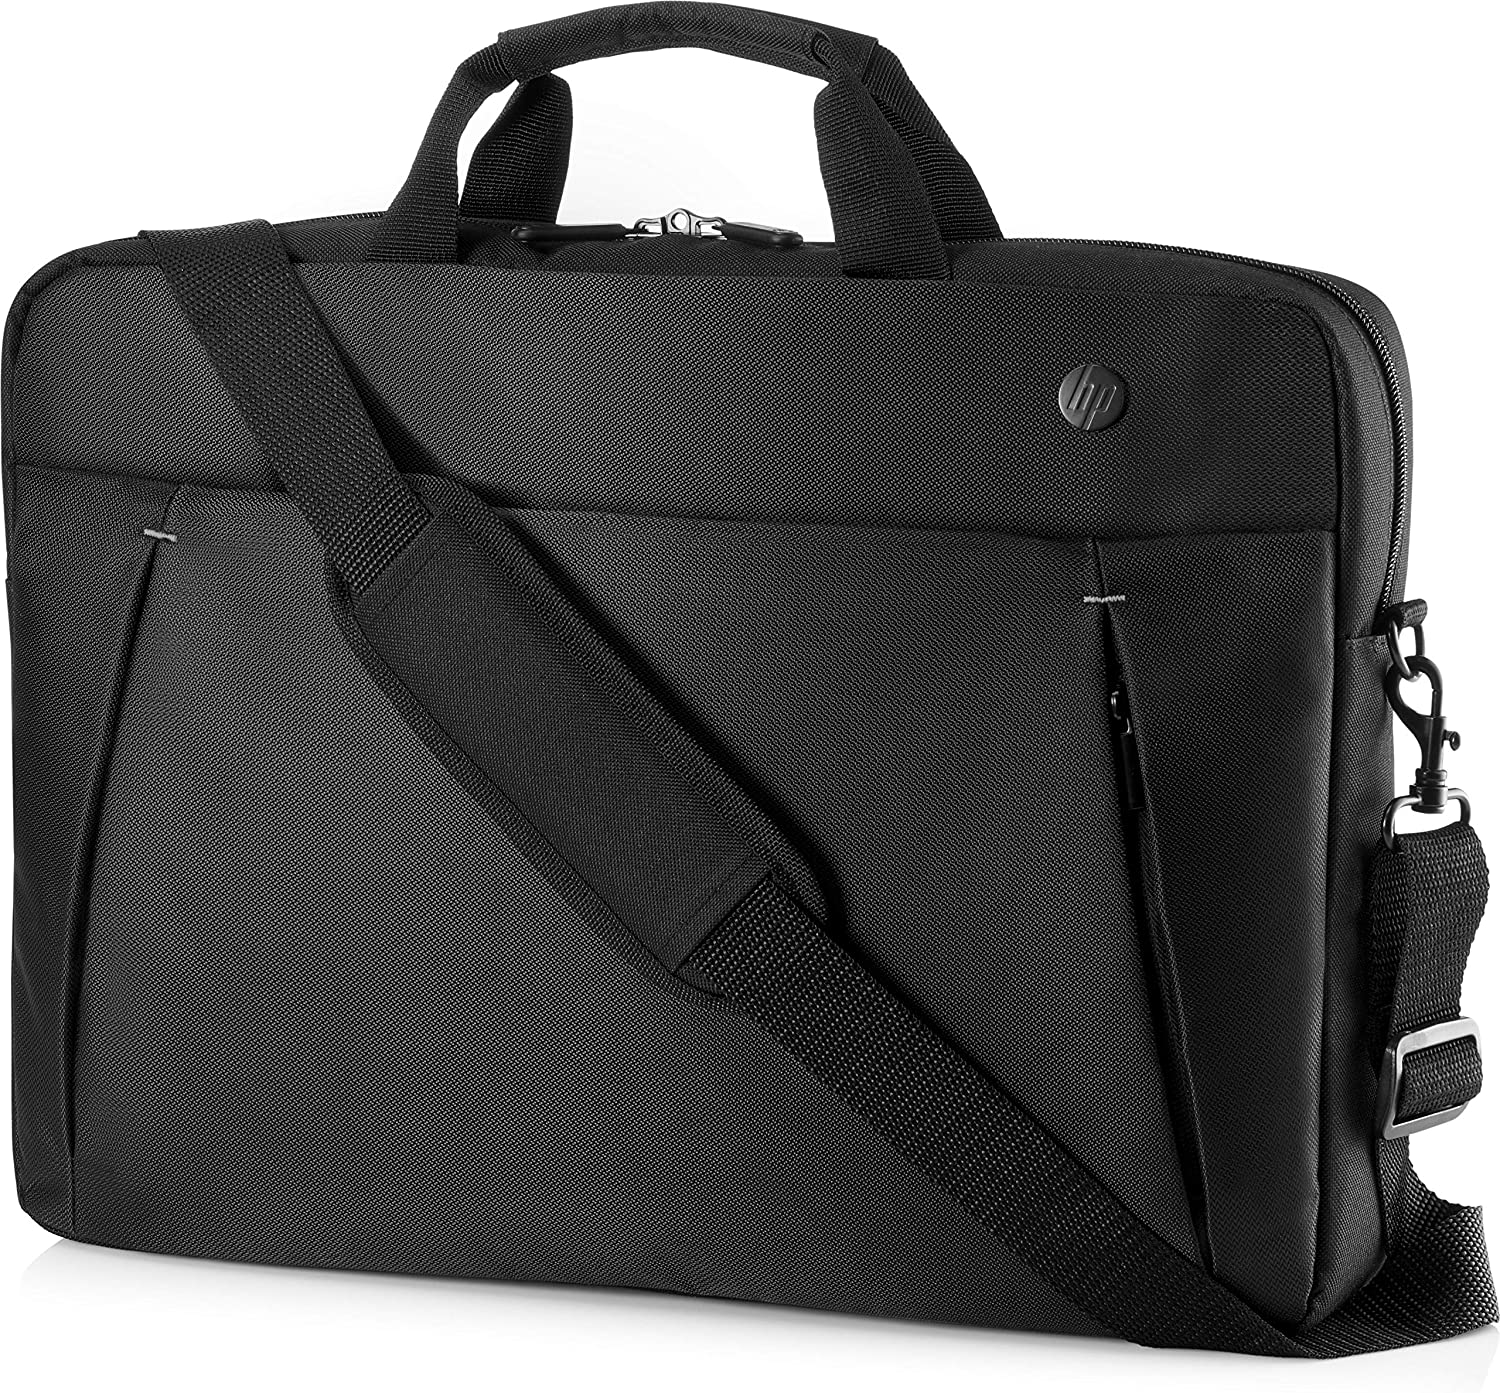 HP Business Carrying Case for 17.3